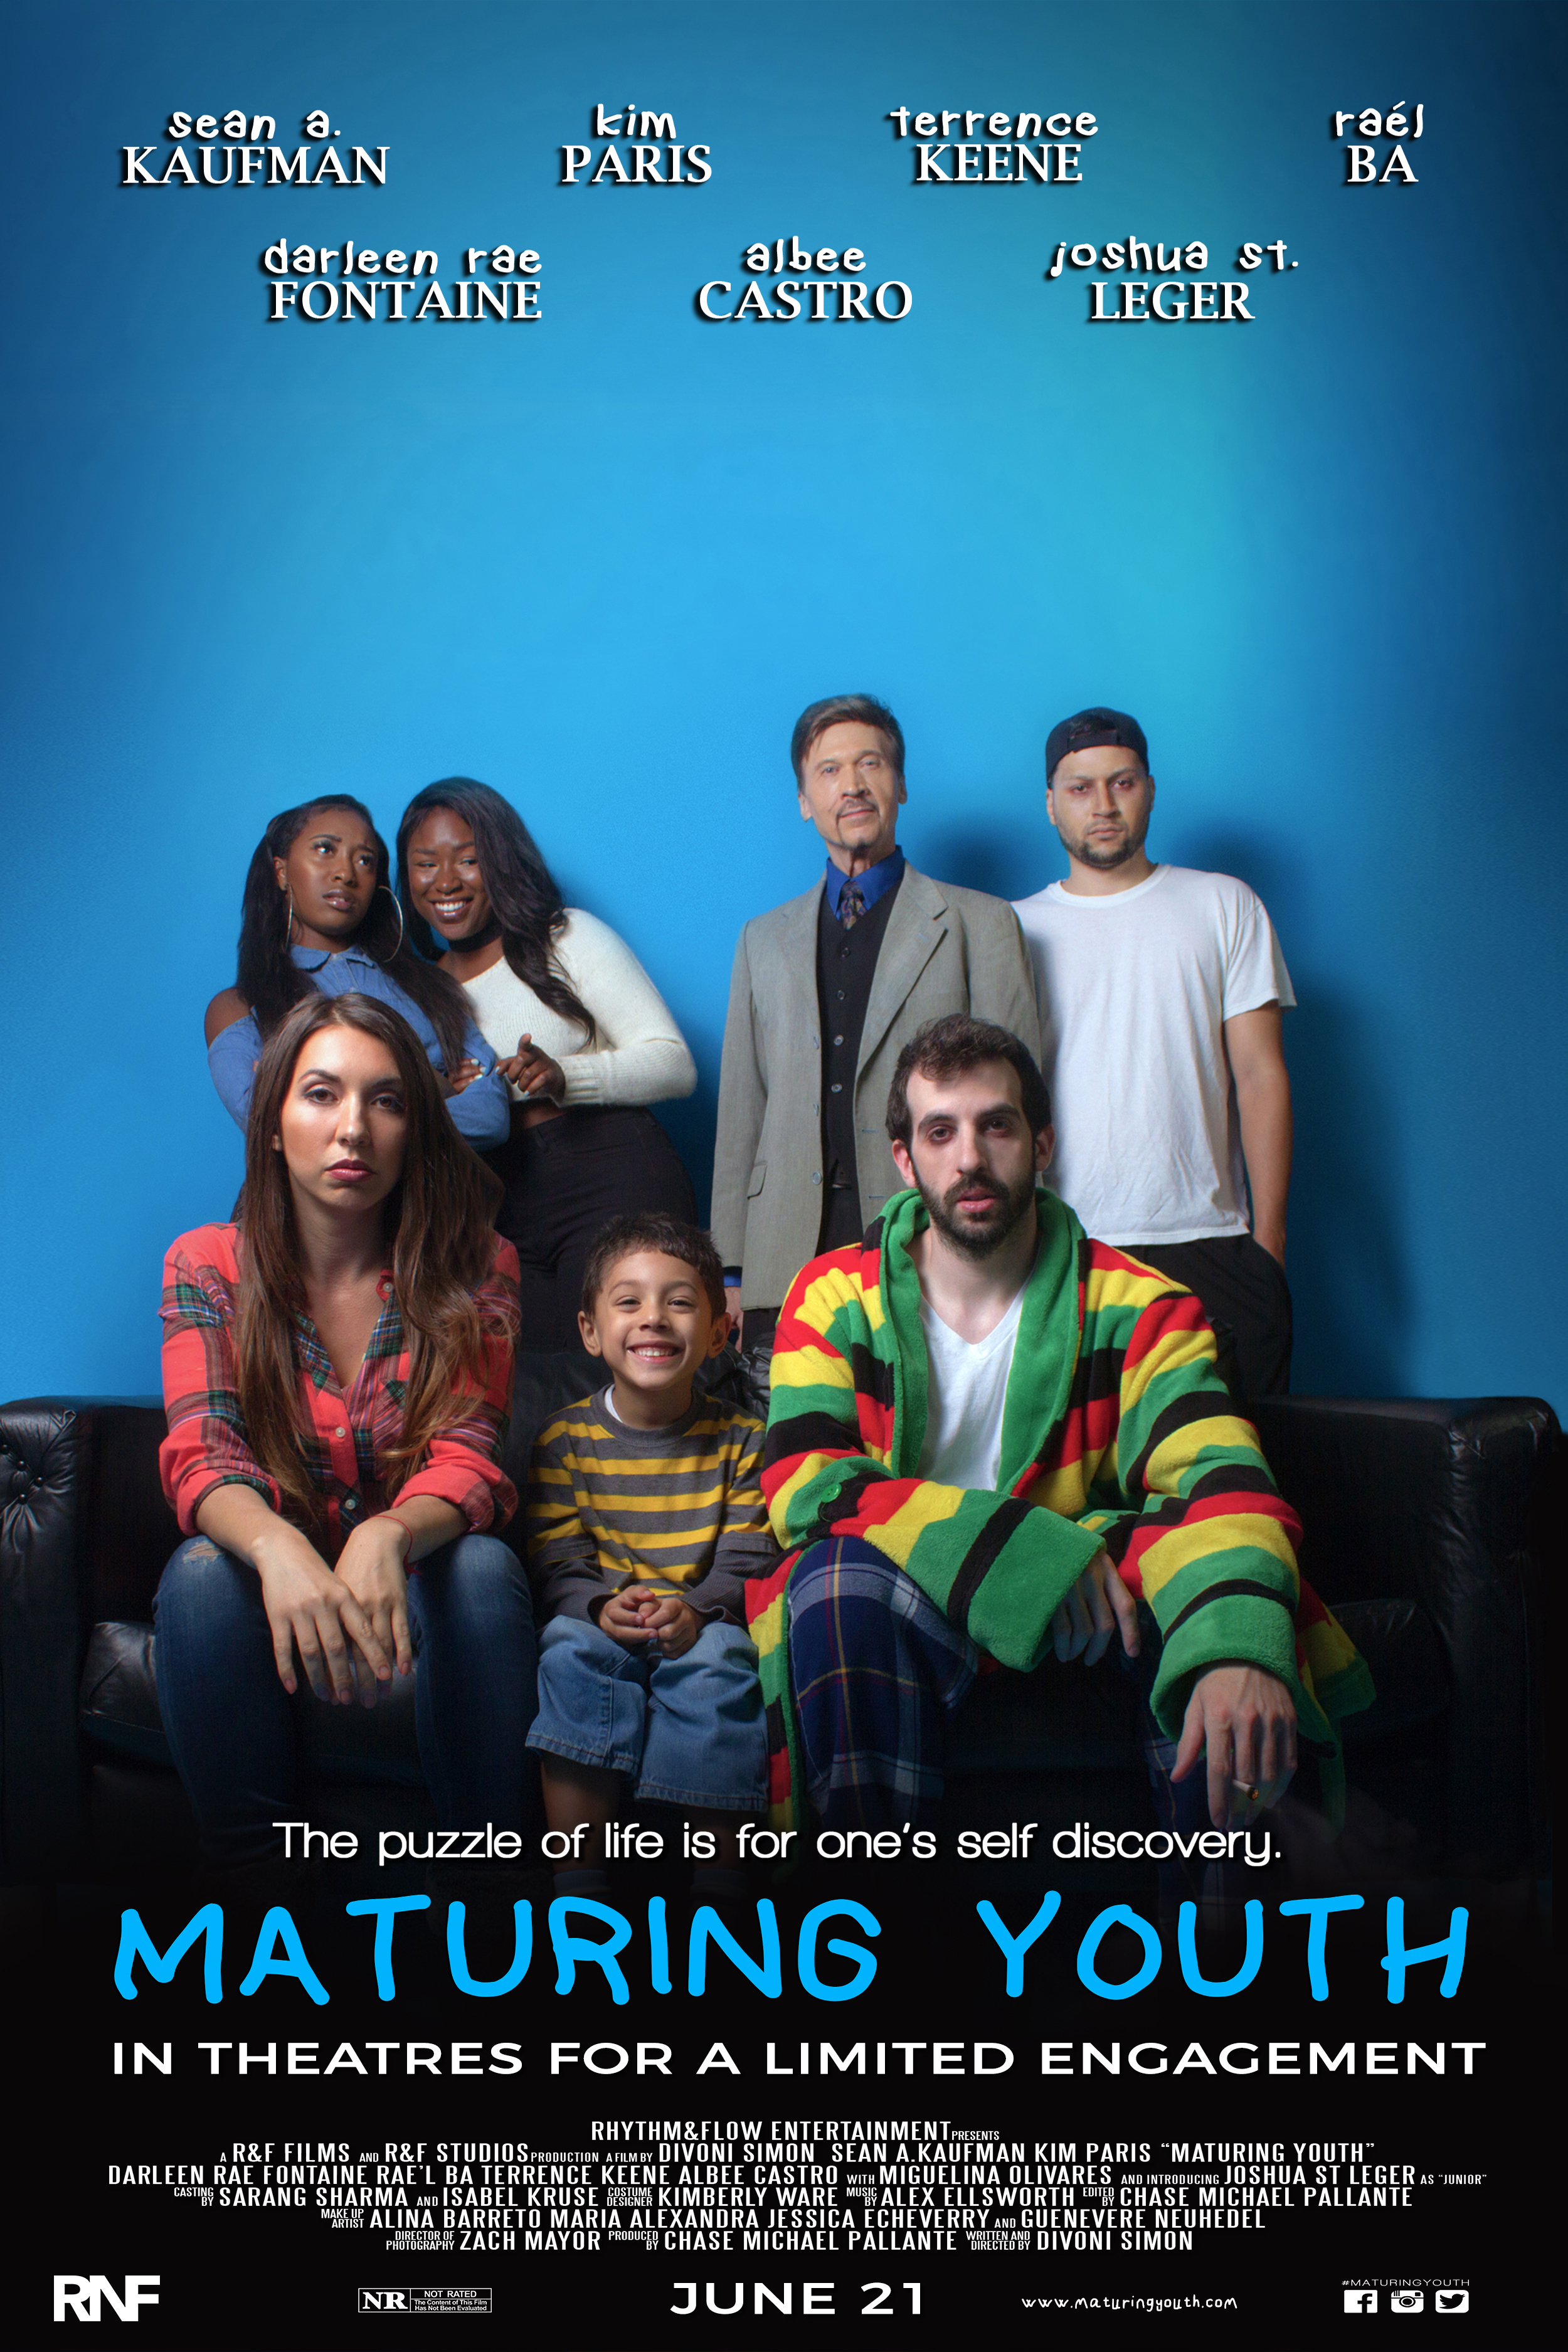 MATURING YOUTH MAIN CAST THEATER POSTER.jpg